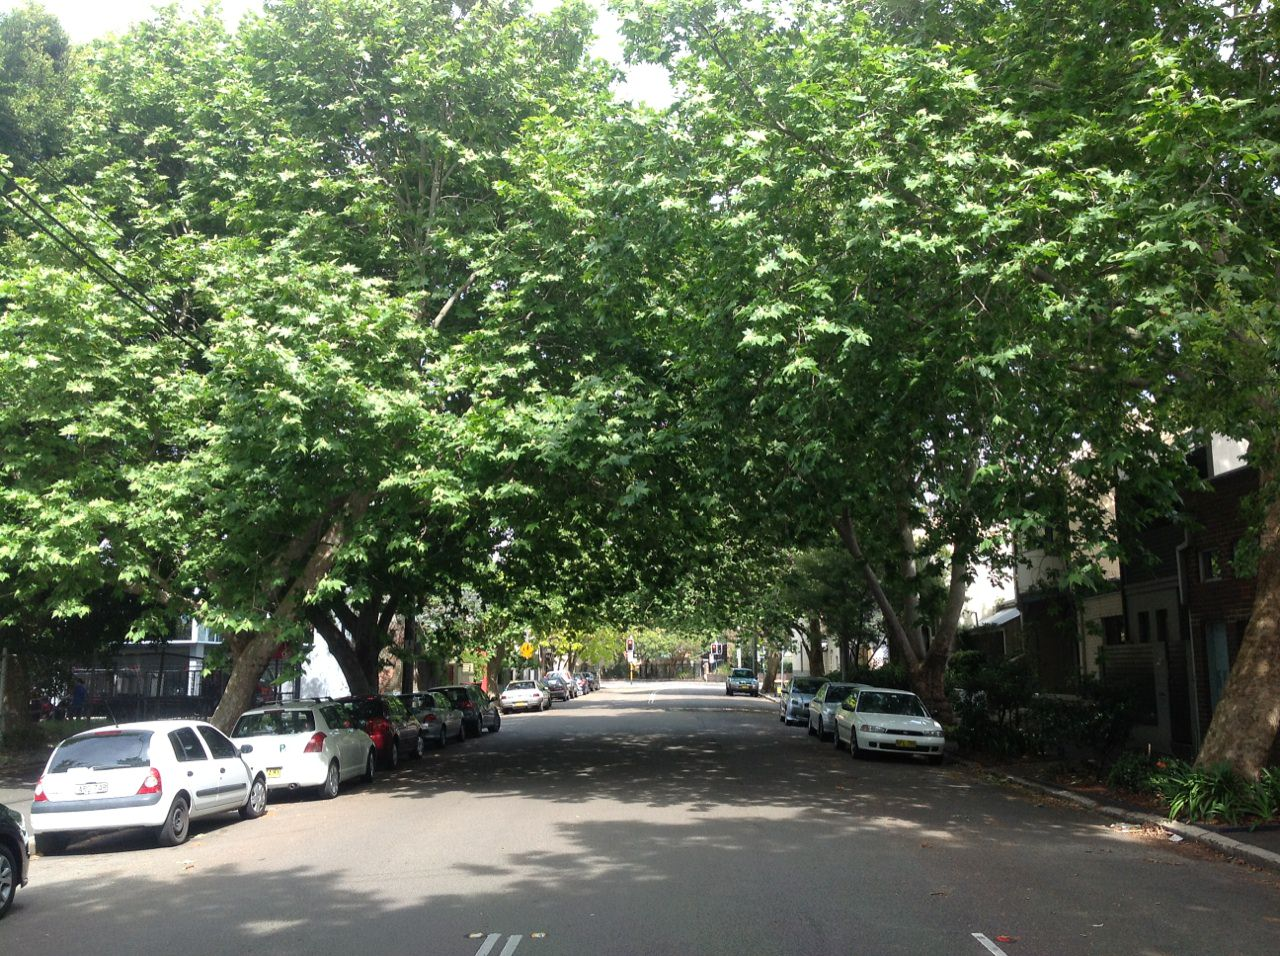 The London Plane Tree avenue along Buckland Street, Alexandria.